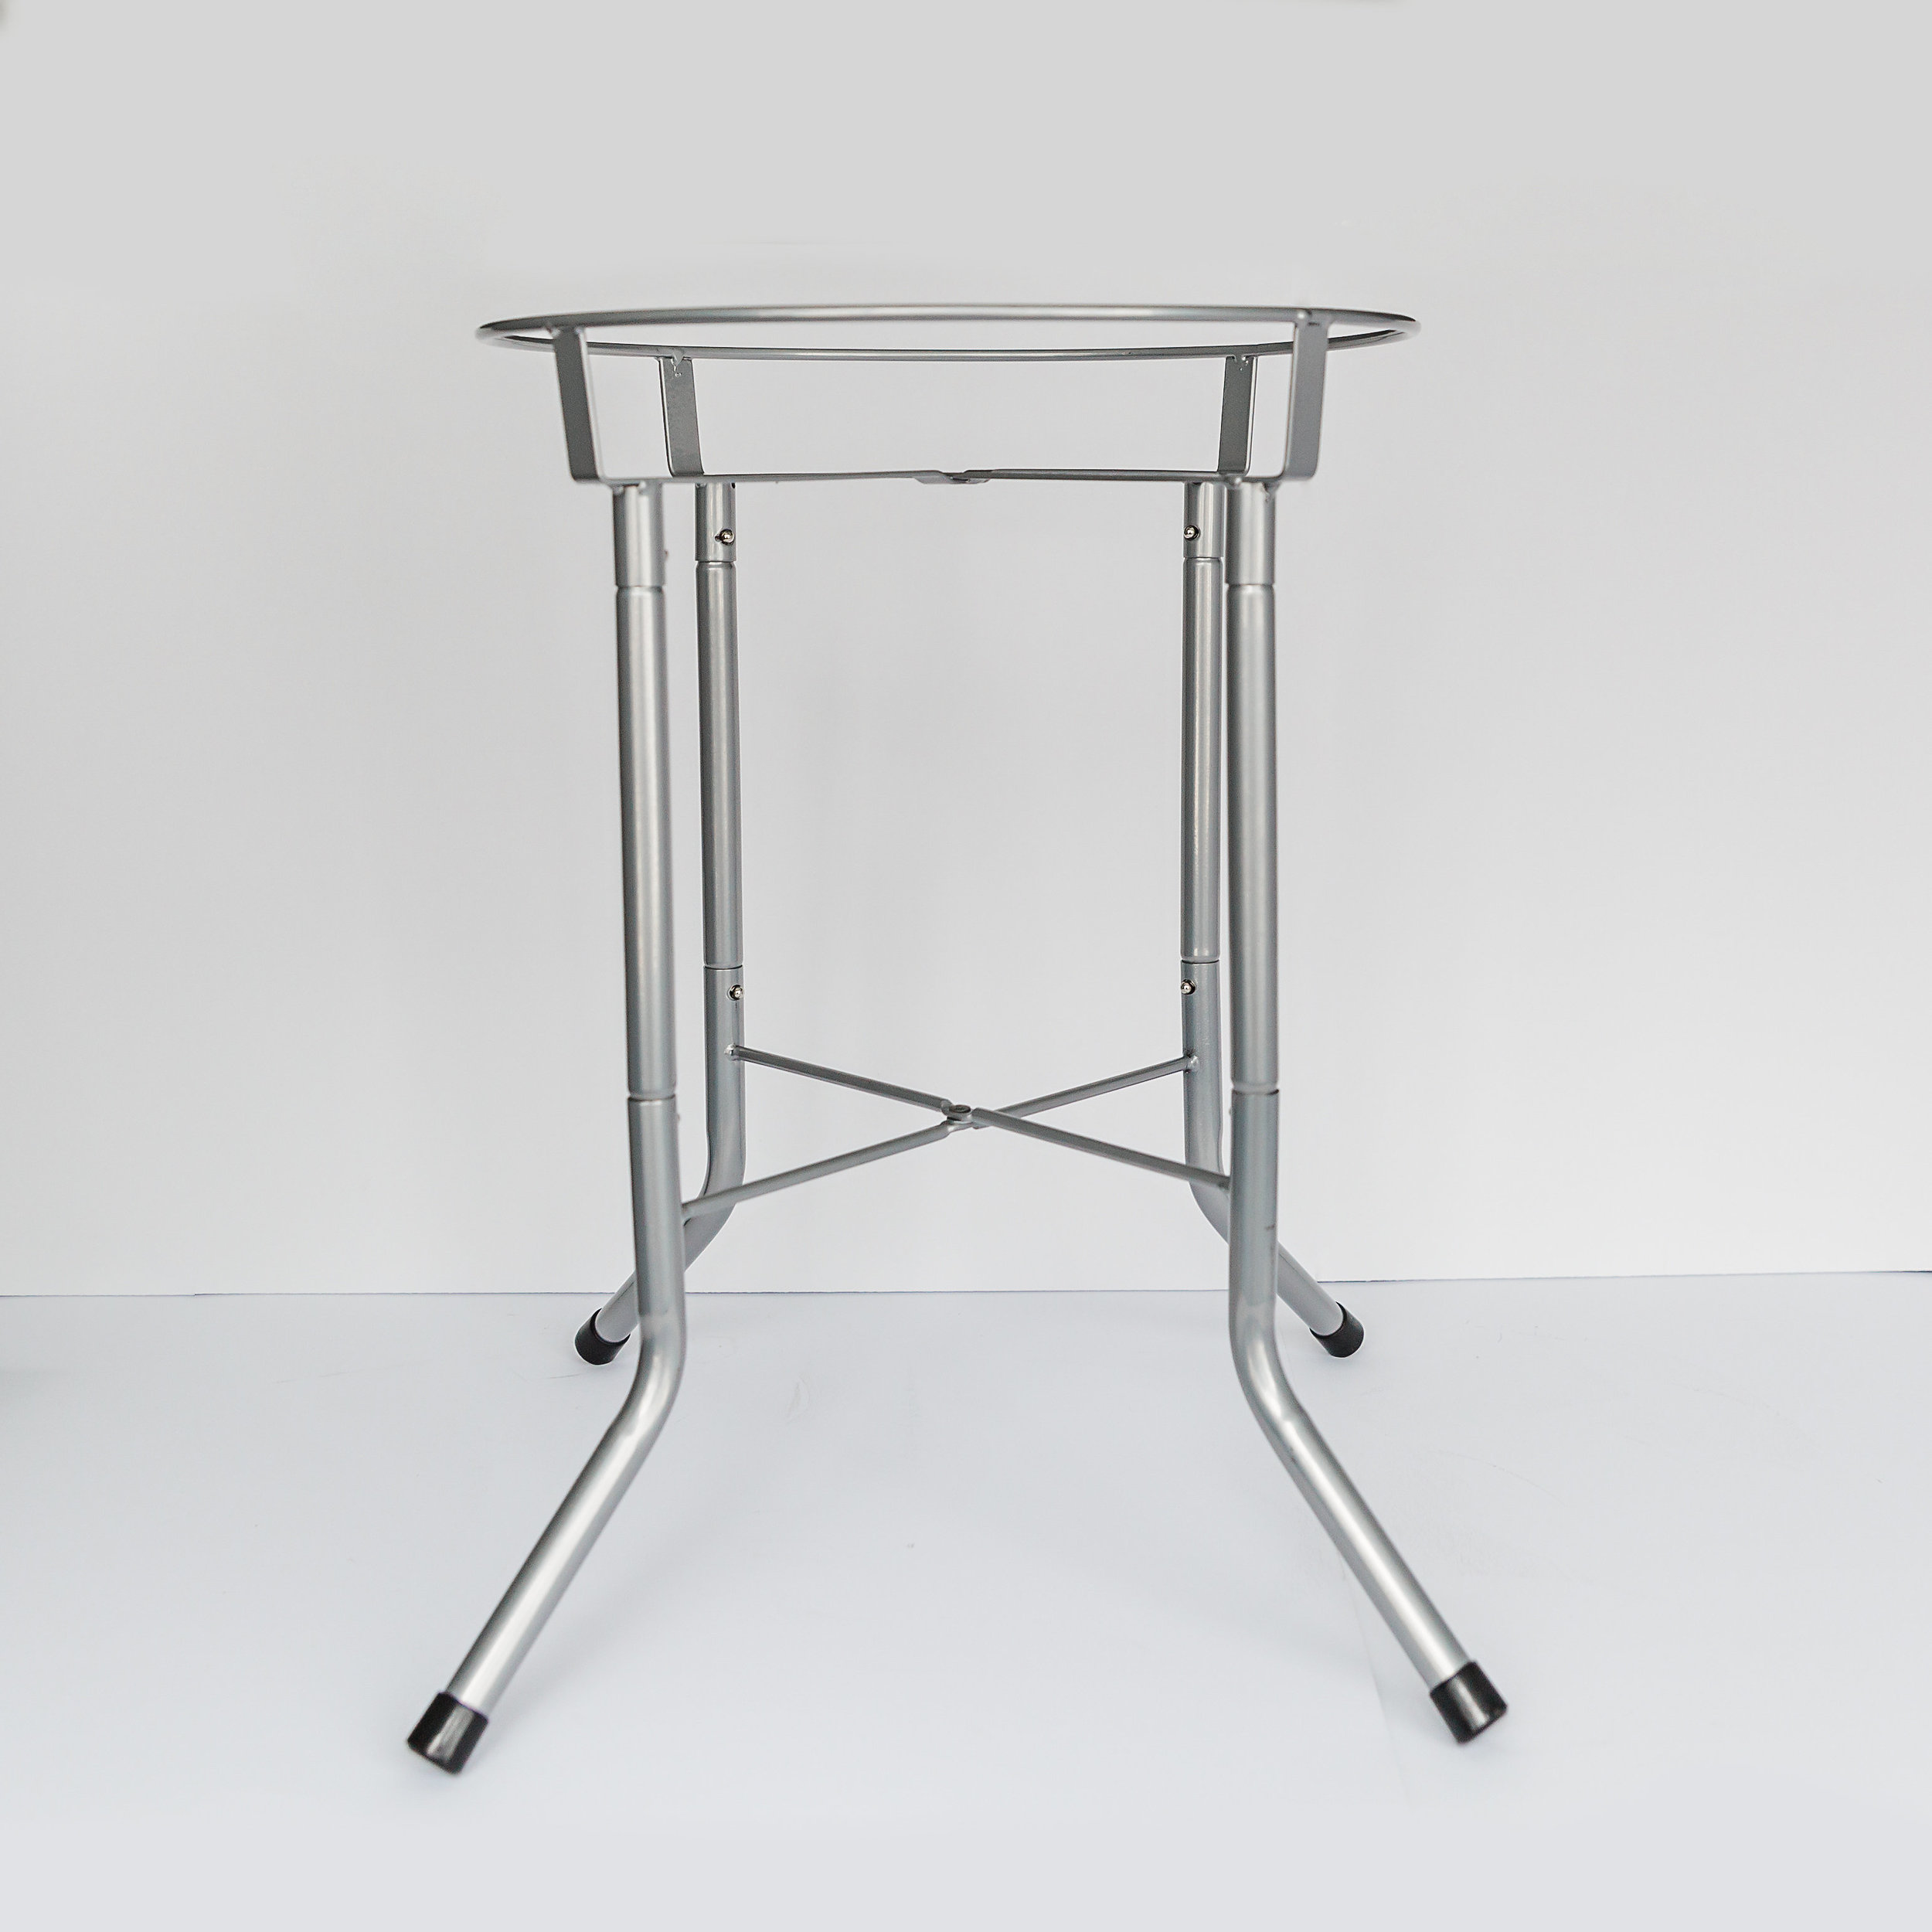 Metal Beverage Bucket Stand  dimensions: 13 inches 'x17.75 inches. >>>$4.00<<<